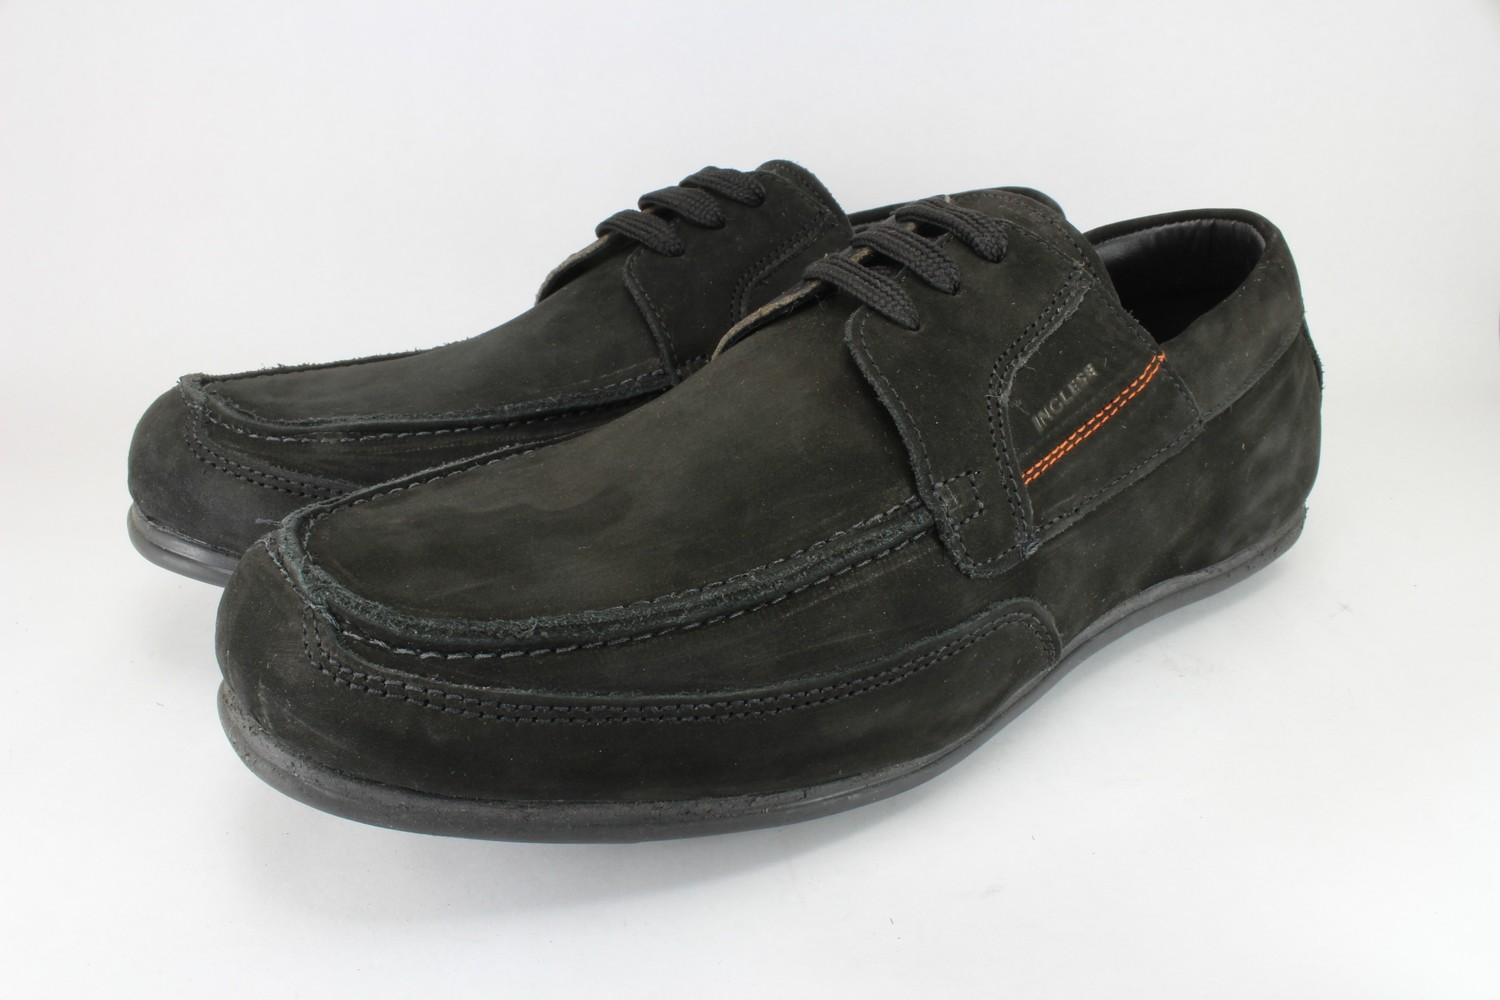 Mens SHOES Genuine Nubuck Leather Black - SUGGESTED RETAIL PRICE $45.00 - WHOLESALE PRICE $17